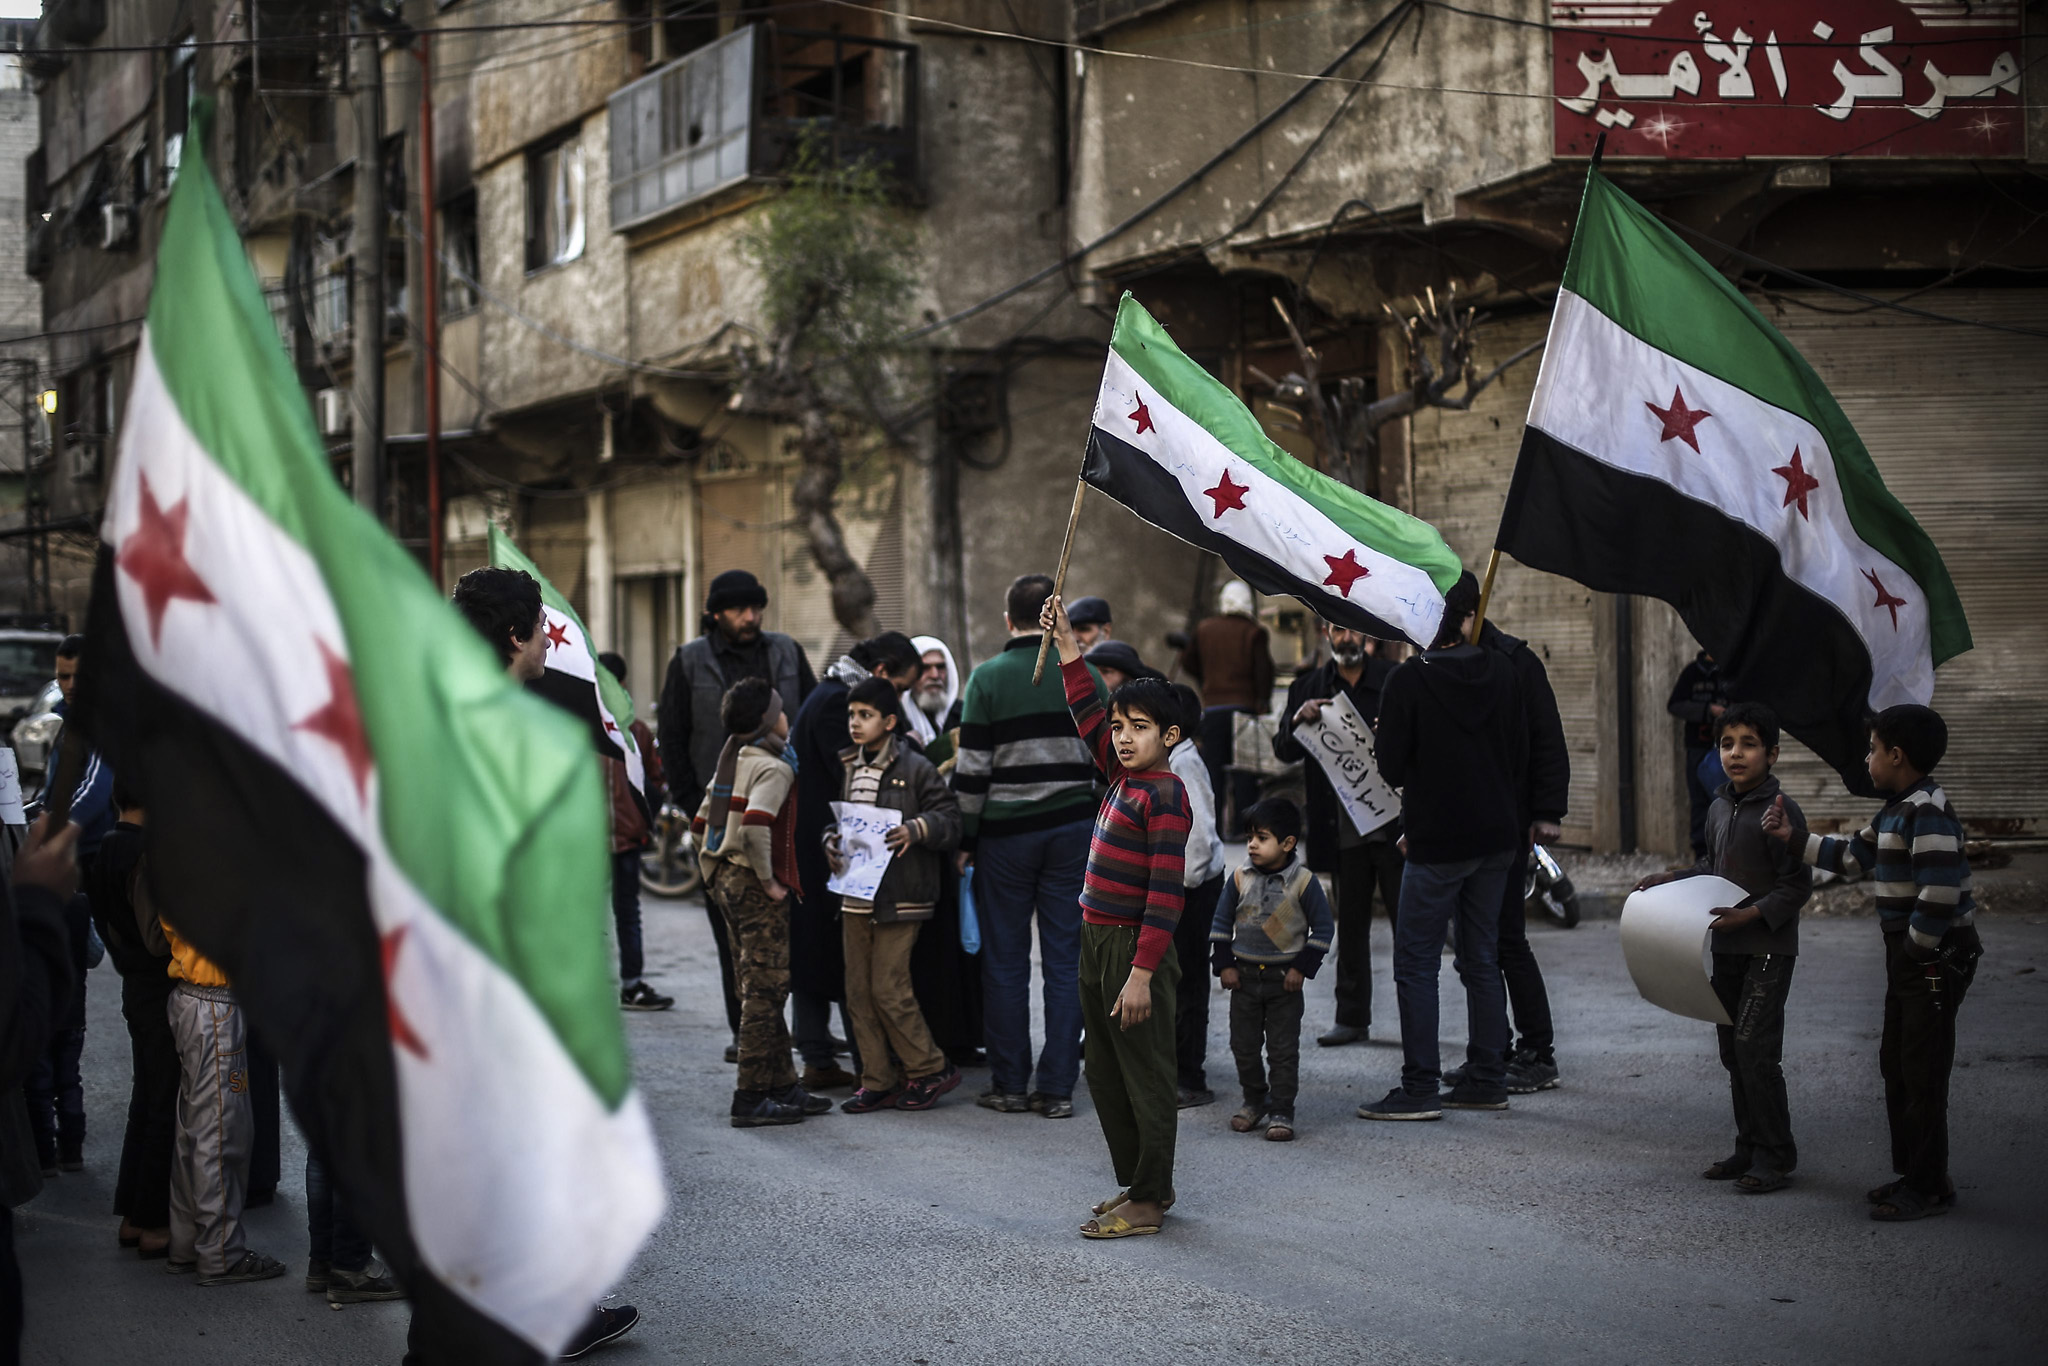 Protest against airstrikes in rebel-held city of Douma...epa05205914 Syrians wave their national flag during a protest against the airstrikes which broke the Russian-US brokered ceasefire a day before, the rebel-held city of Douma, 10 km north-east of Damascus, Syria, 11 March 2016. The ceasefire agreement enters its third week today.  EPA/MOHAMMED BADRA